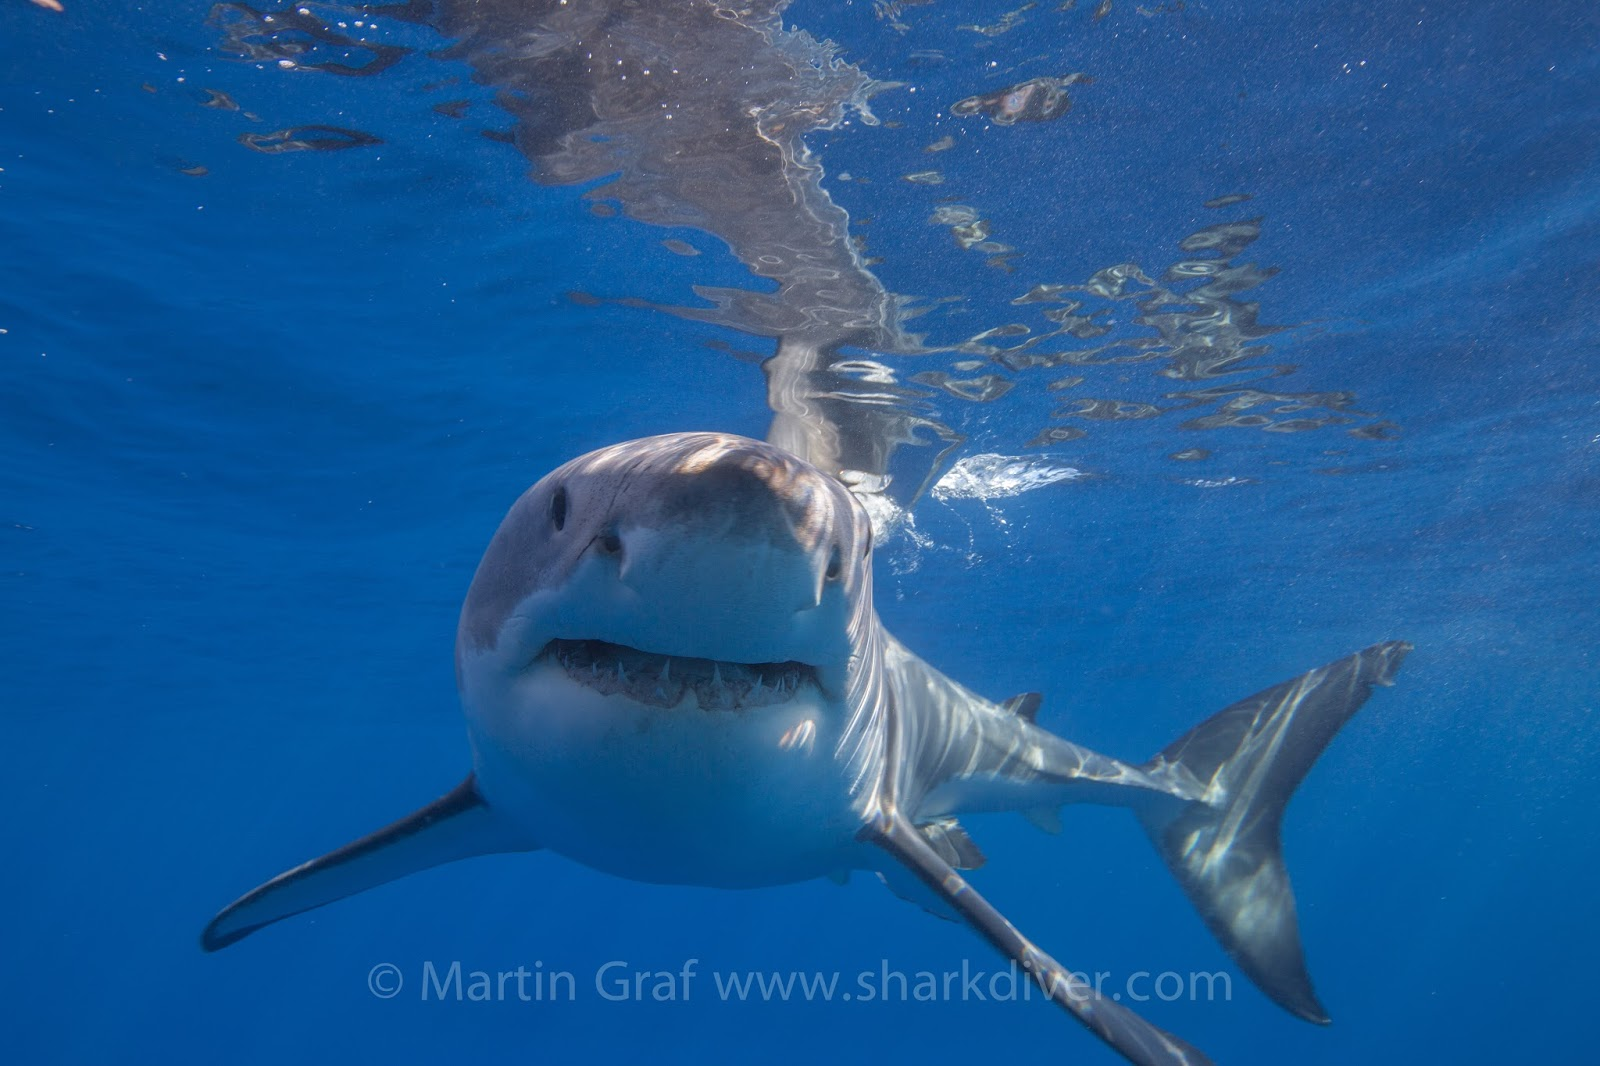 shark diver blog and industry blog shark diver part  the biggest shark at guadalupe island